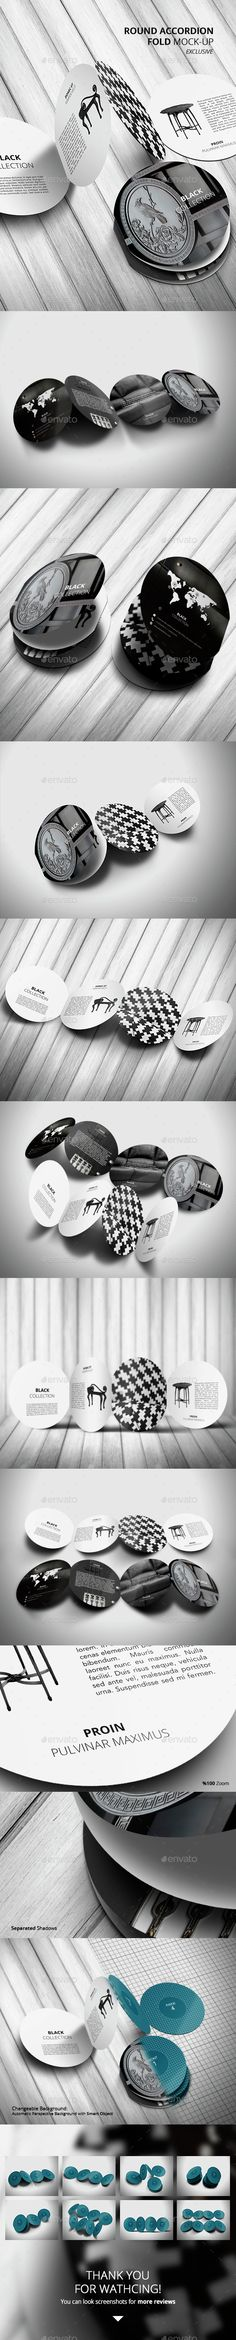 Round Accordion Fold Mock-Up. Download here: http://graphicriver.net/item/round-accordion-fold-mockup/15304508?ref=ksioks